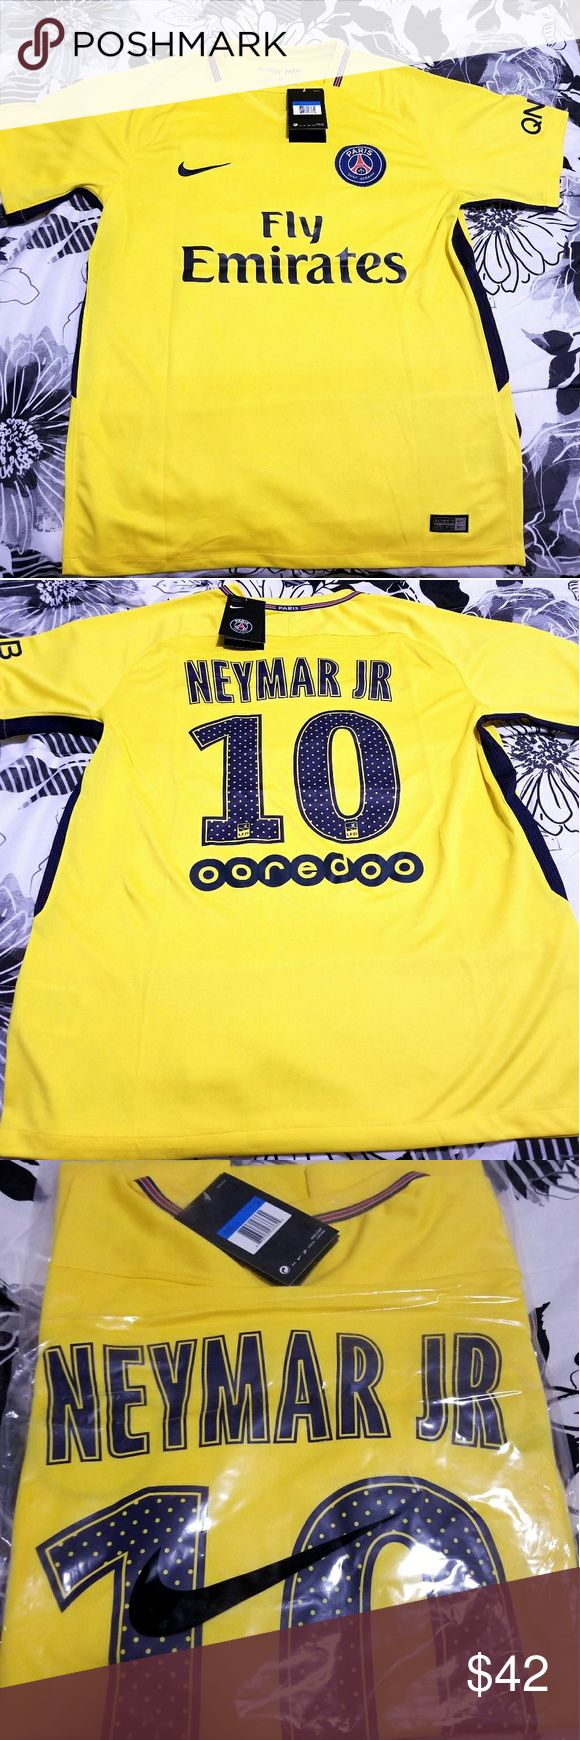 New Neymar PSG Medium Away Jersey New With Tags PSG Away Jersey Medium Size Adult Men Nike Bag Included (last pict) Ships Same Or Next Day Nike Shirts Tees - Short Sleeve